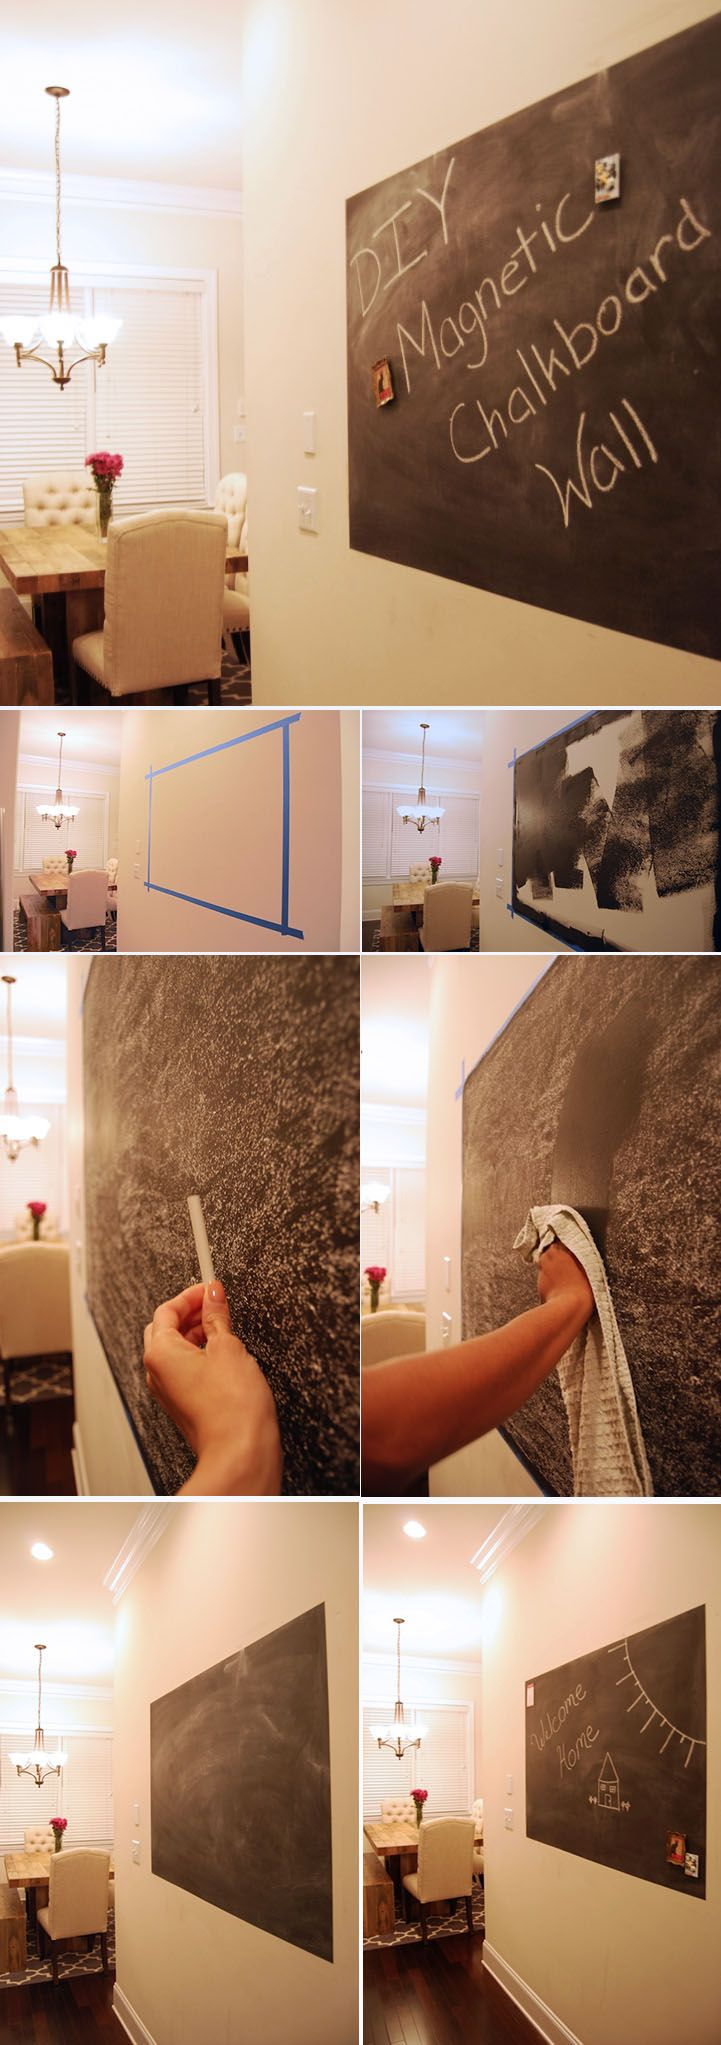 DIY Magnetic Chalkboard Wall | The Home Depot Community ...